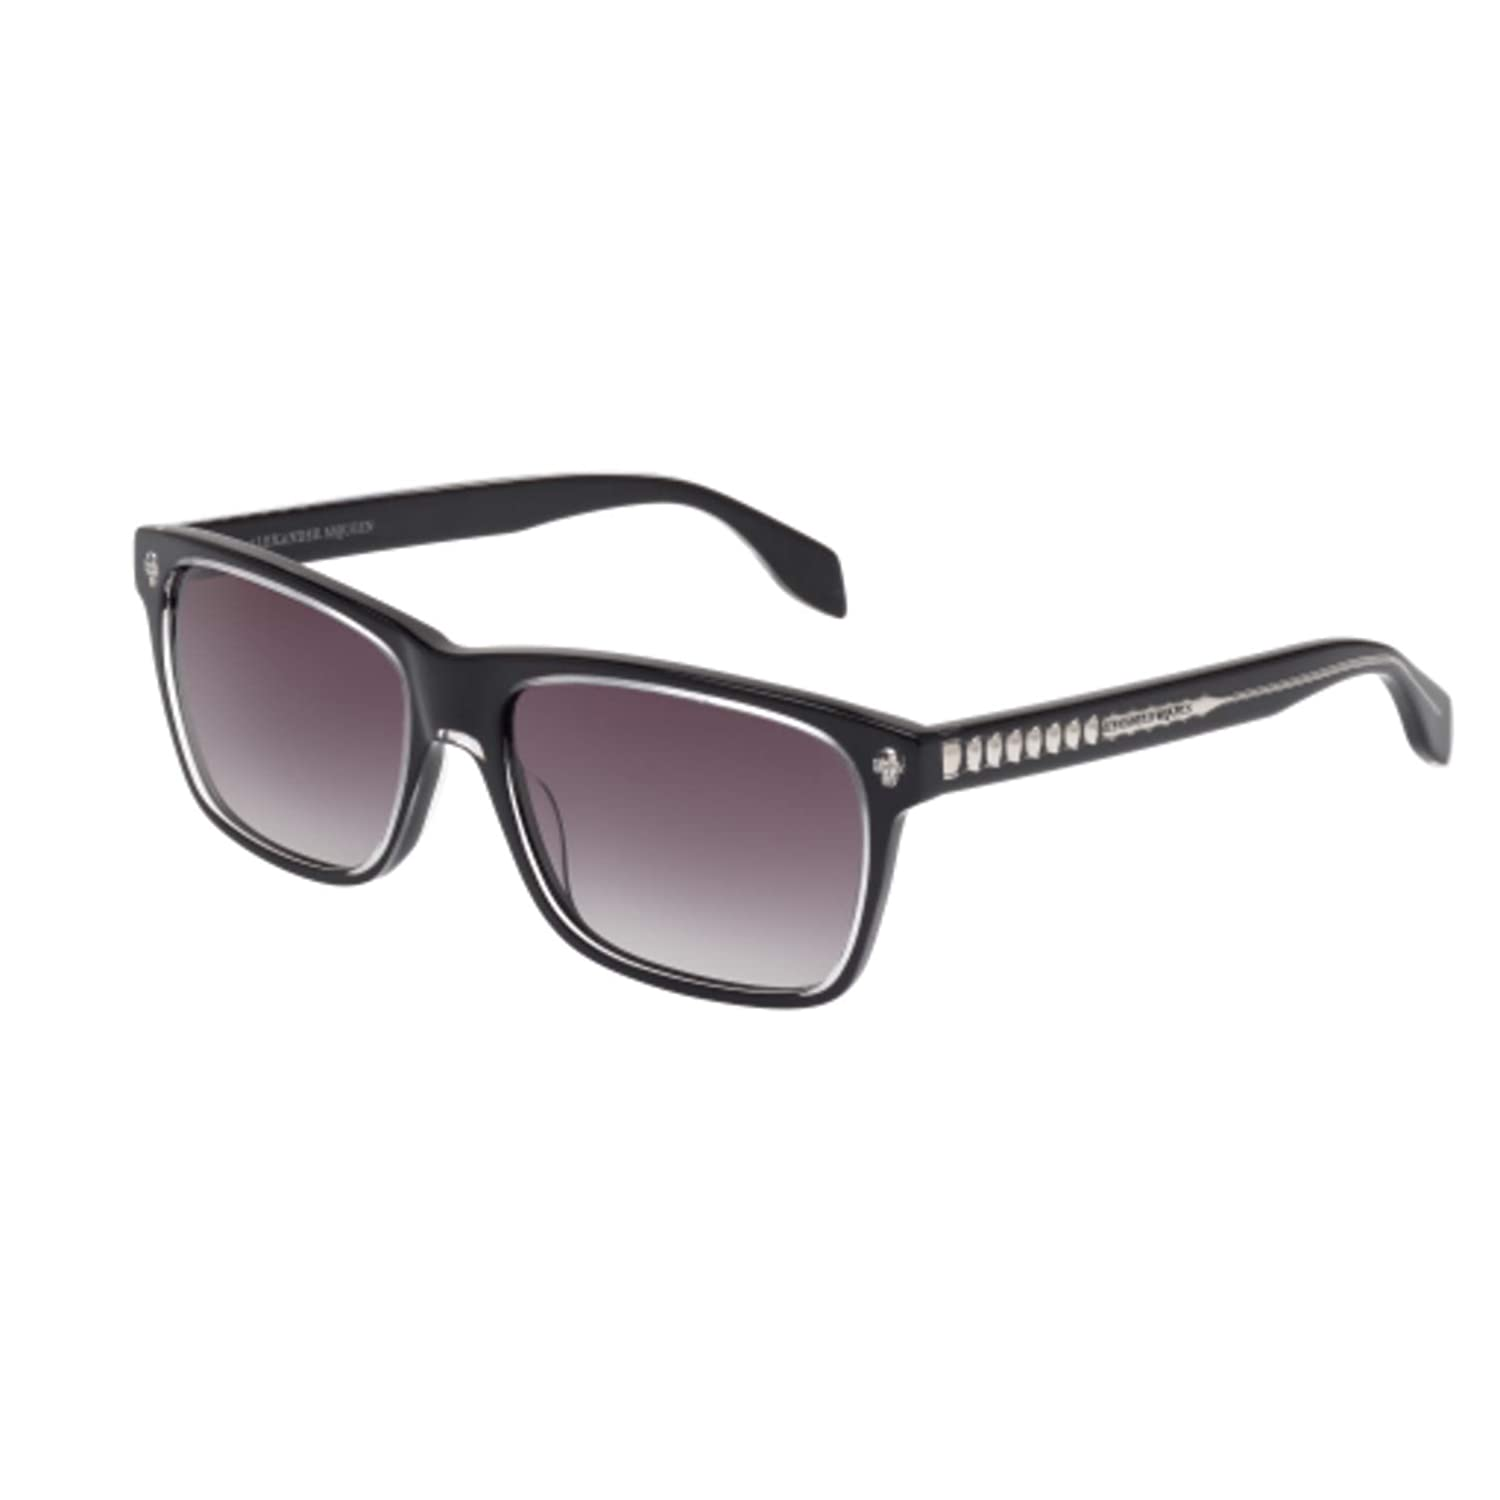 a279eb7800f Alexander McQueen AM0025S 001 Black Grey AM0025S Rectangle Sunglasses Lens  Cate at Amazon Men s Clothing store